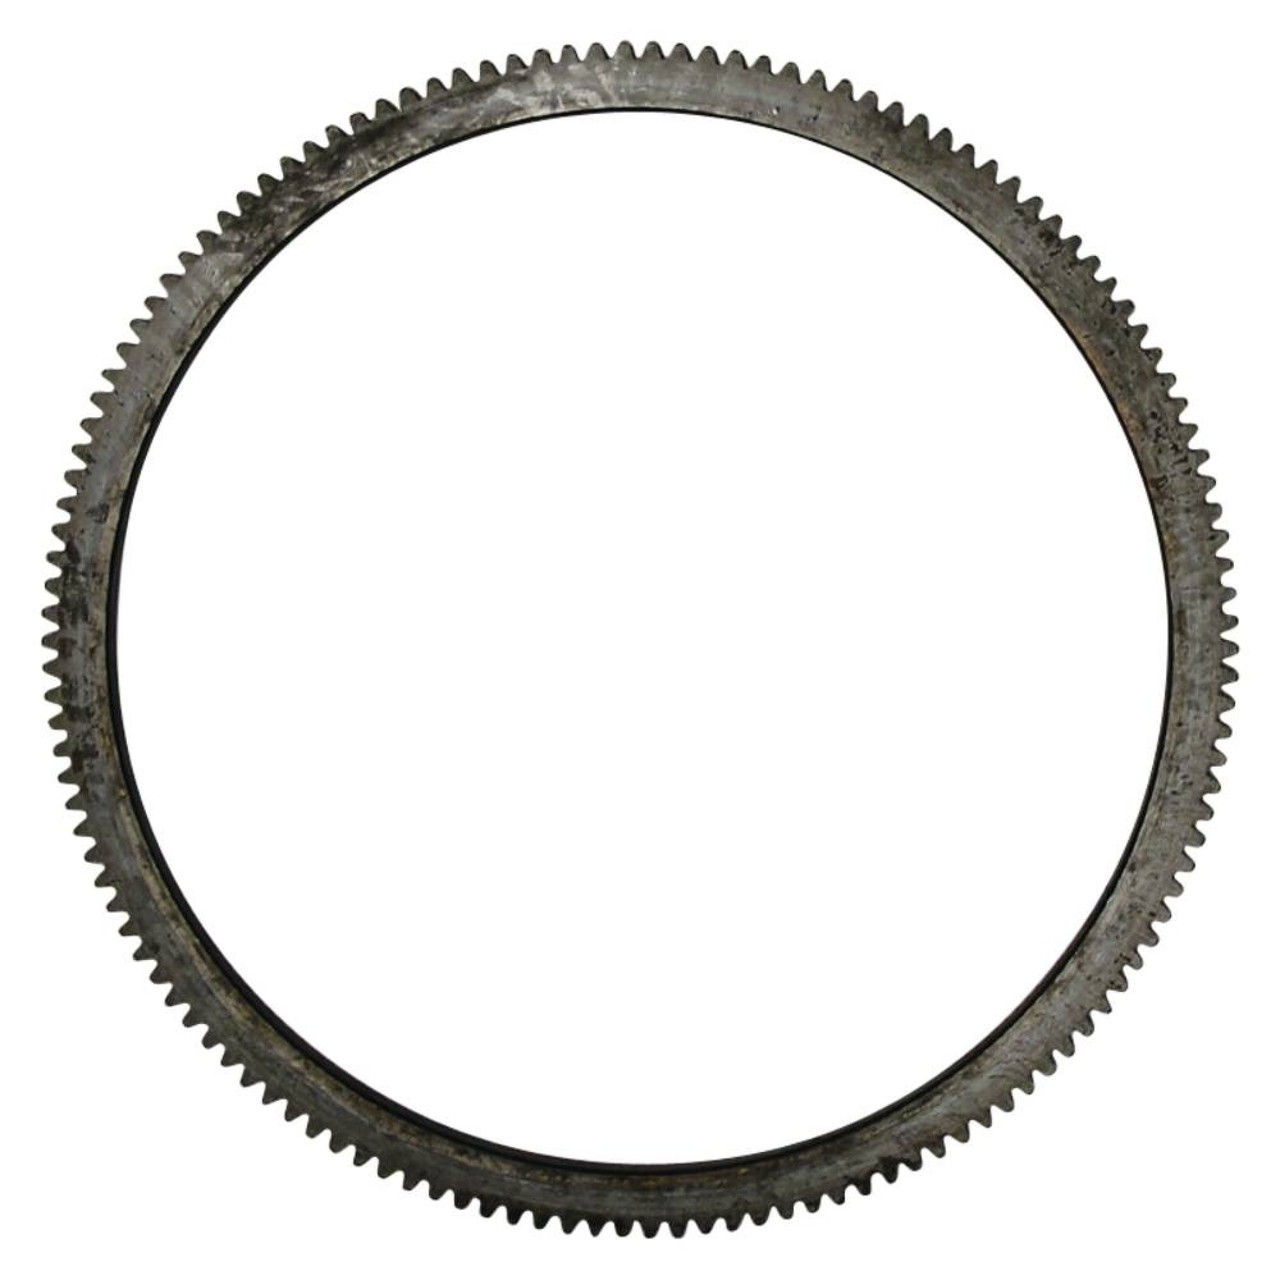 new ring gear for ford new holland 2000  2n  4 cyl 62